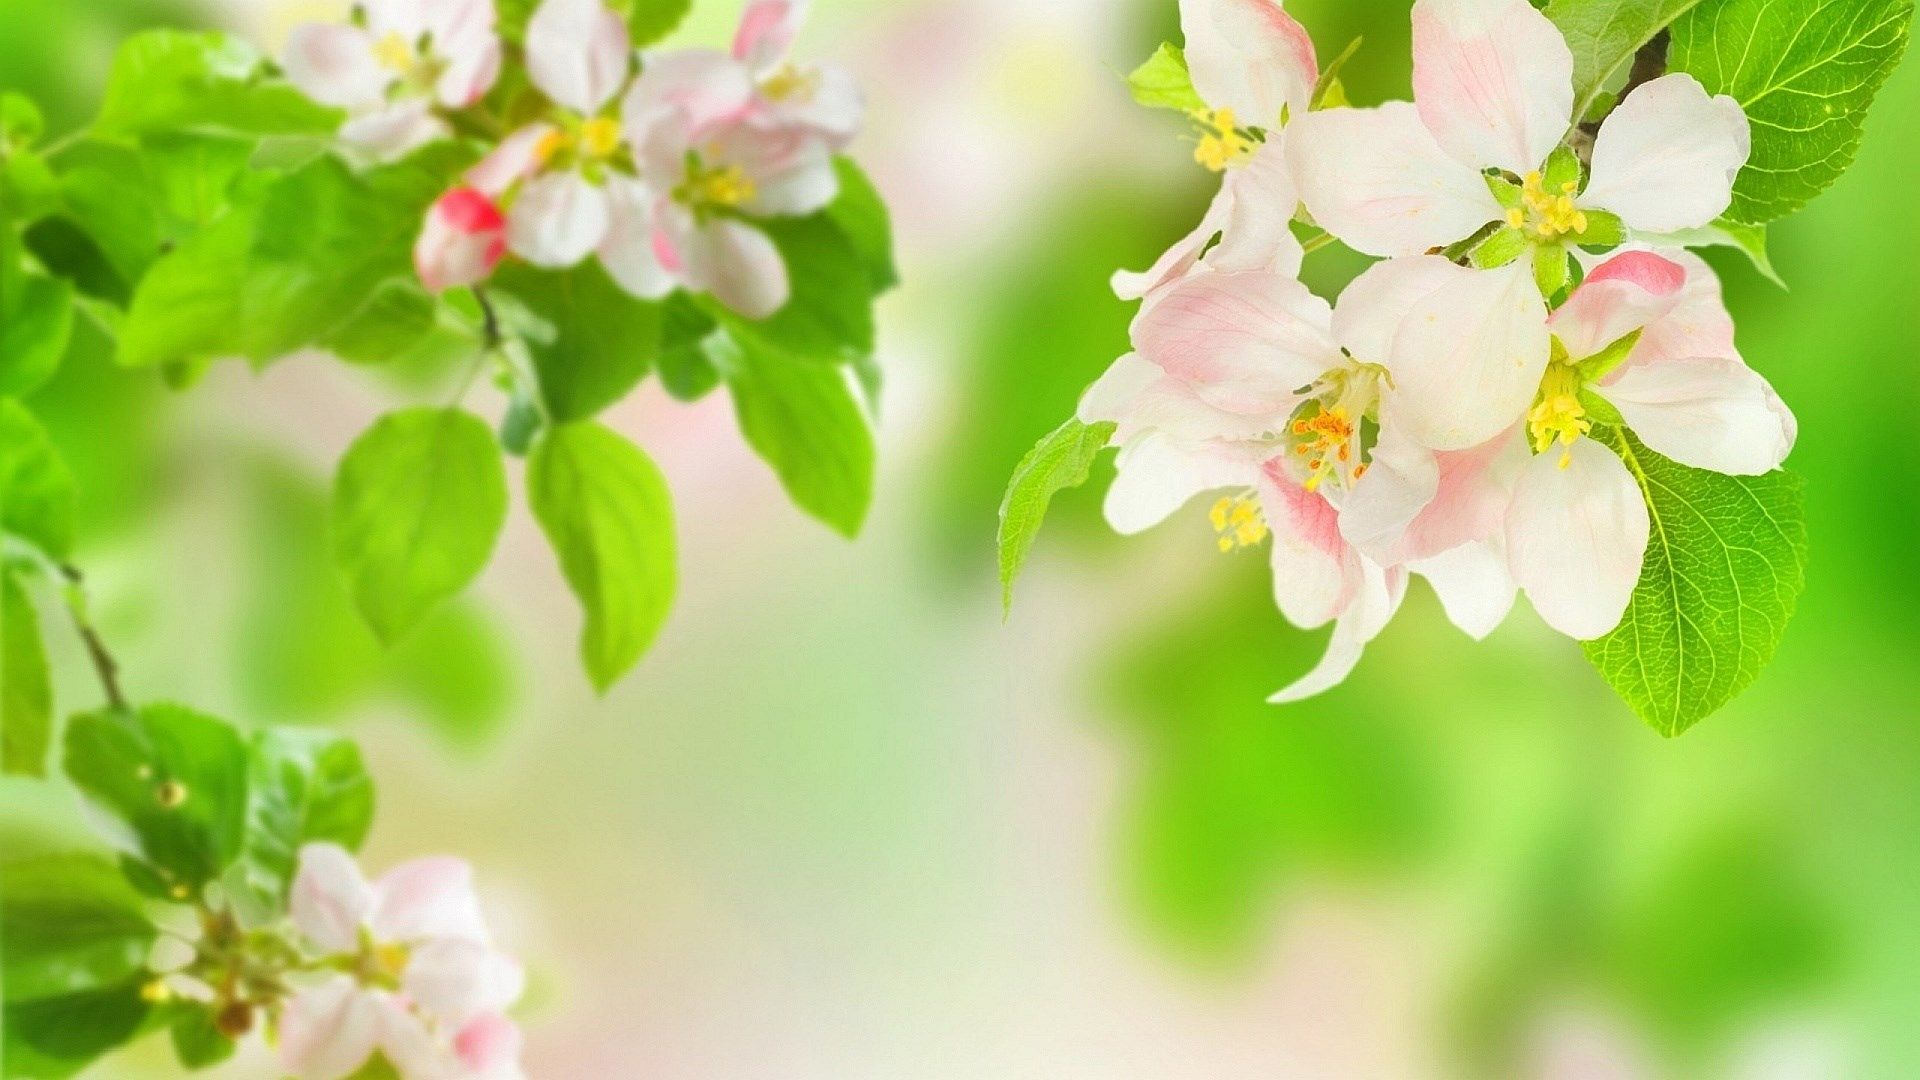 Spring High Resolution Wallpapers Widescreen Spring Flowers Wallpaper Flower Wallpaper Spring Flowers Background